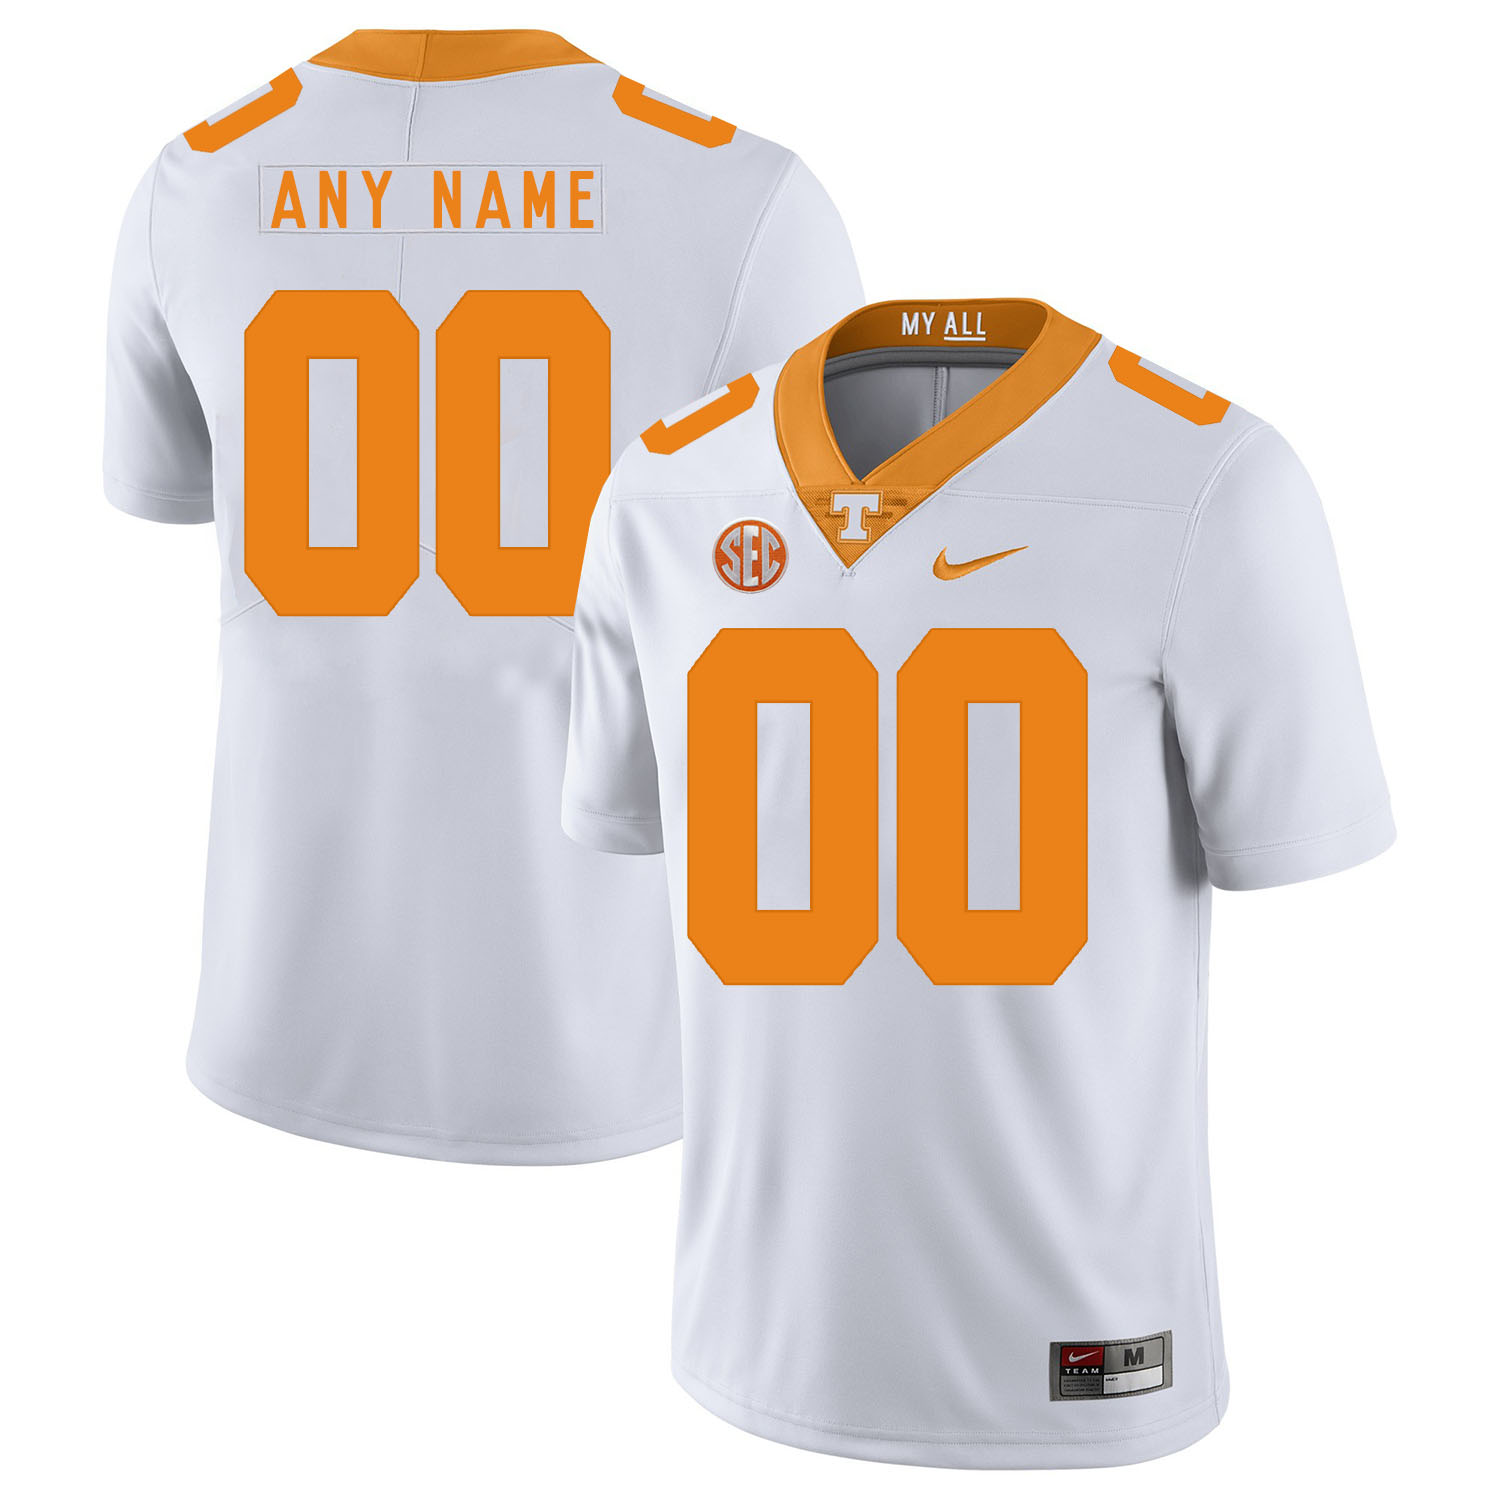 Tennessee Volunteers White Men's Customized Nike College Football Jersey